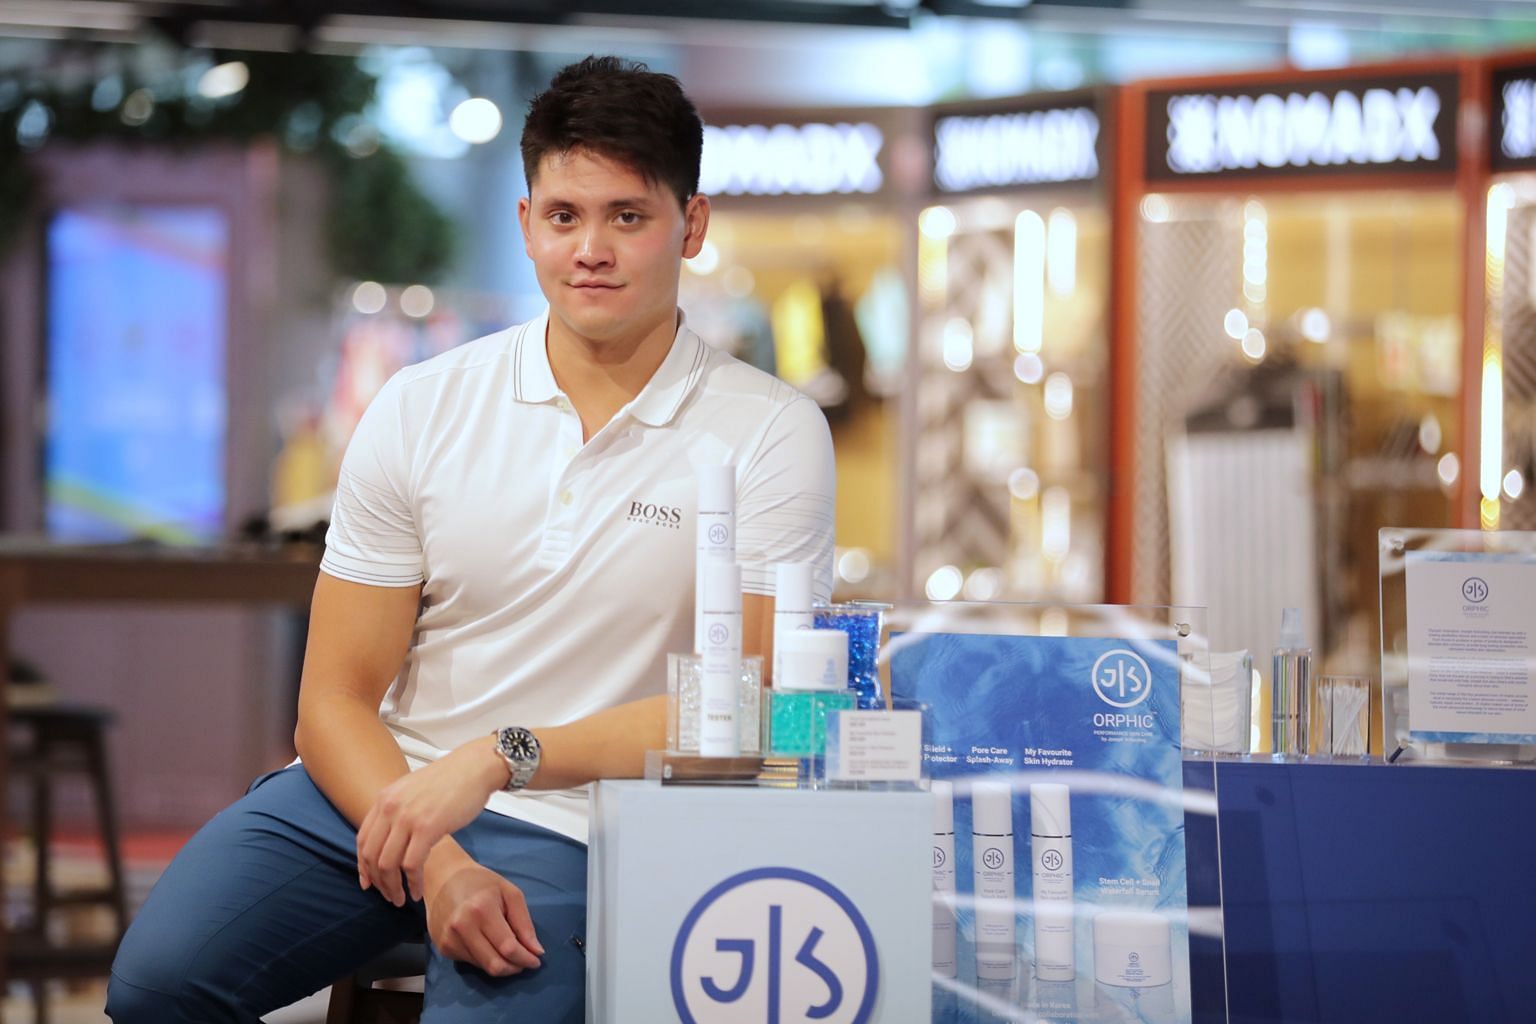 Joseph Schooling's favourite product from his skincare line is the stem cell and snail extract serum, which he uses to moisturise his face and back after every swimming practice.